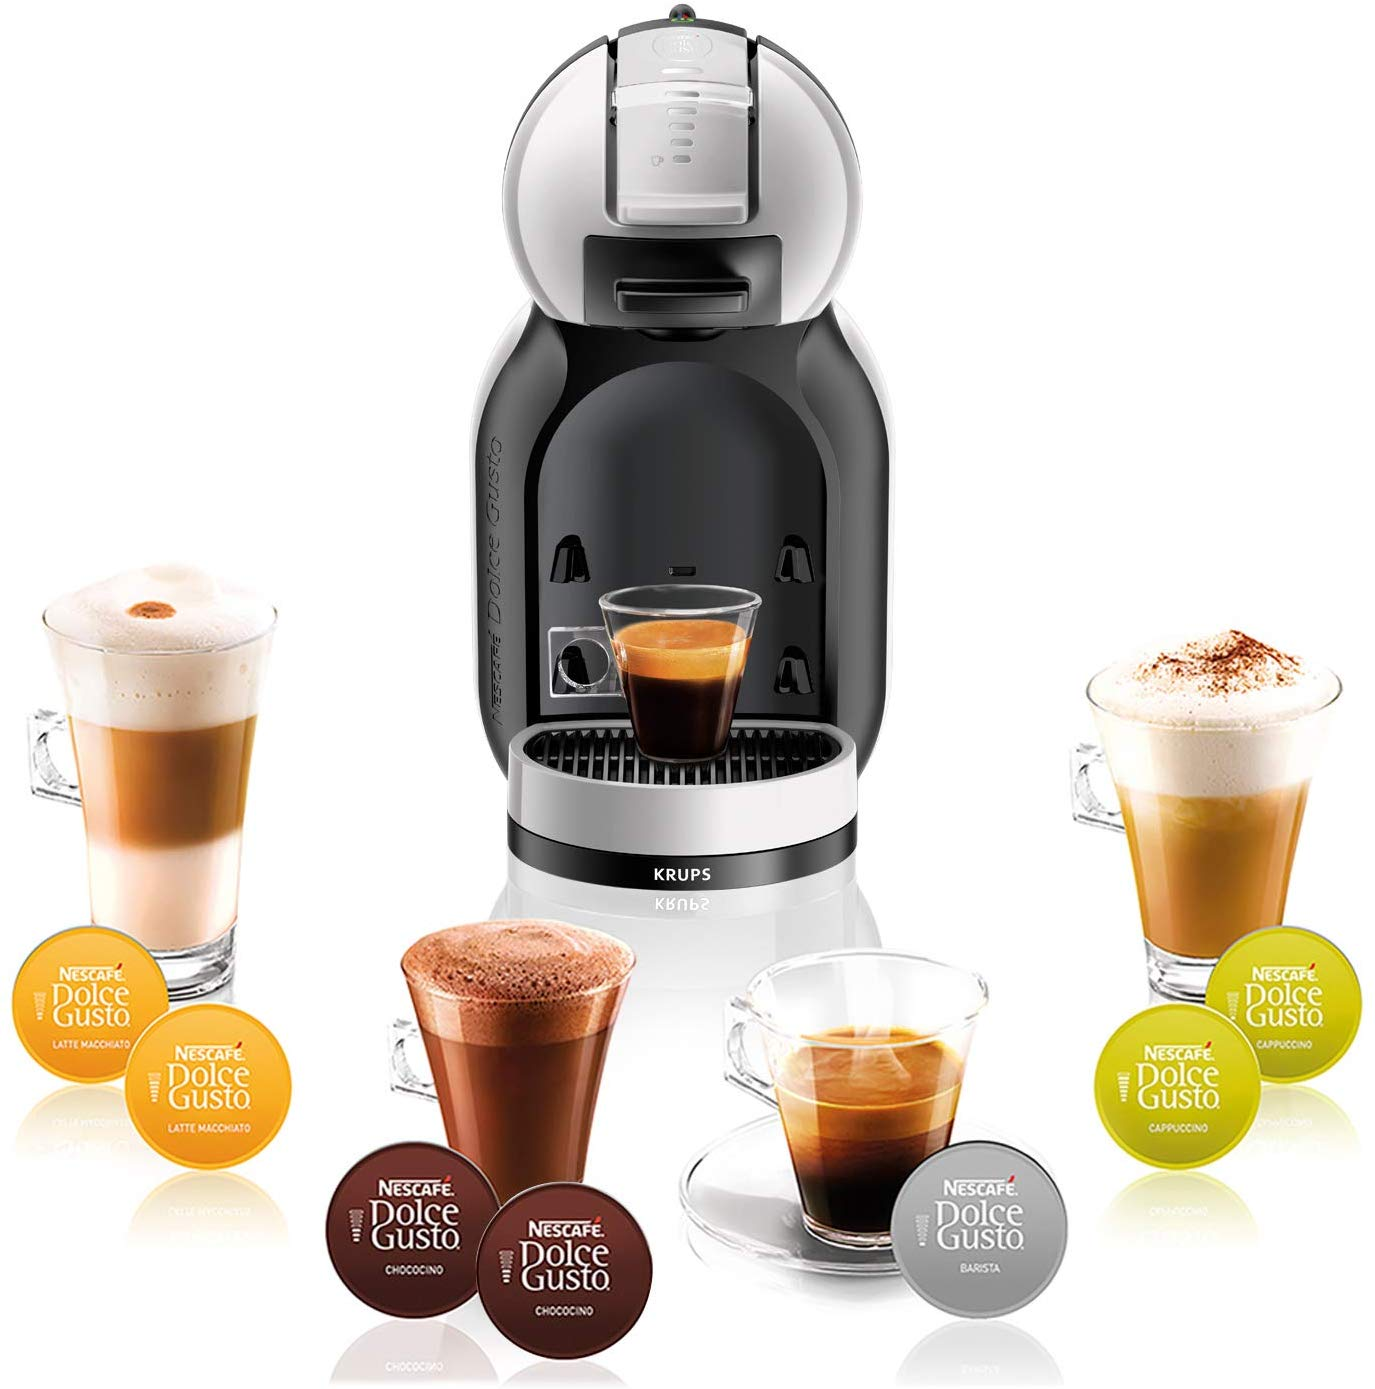 Dolce Gusto Maschine